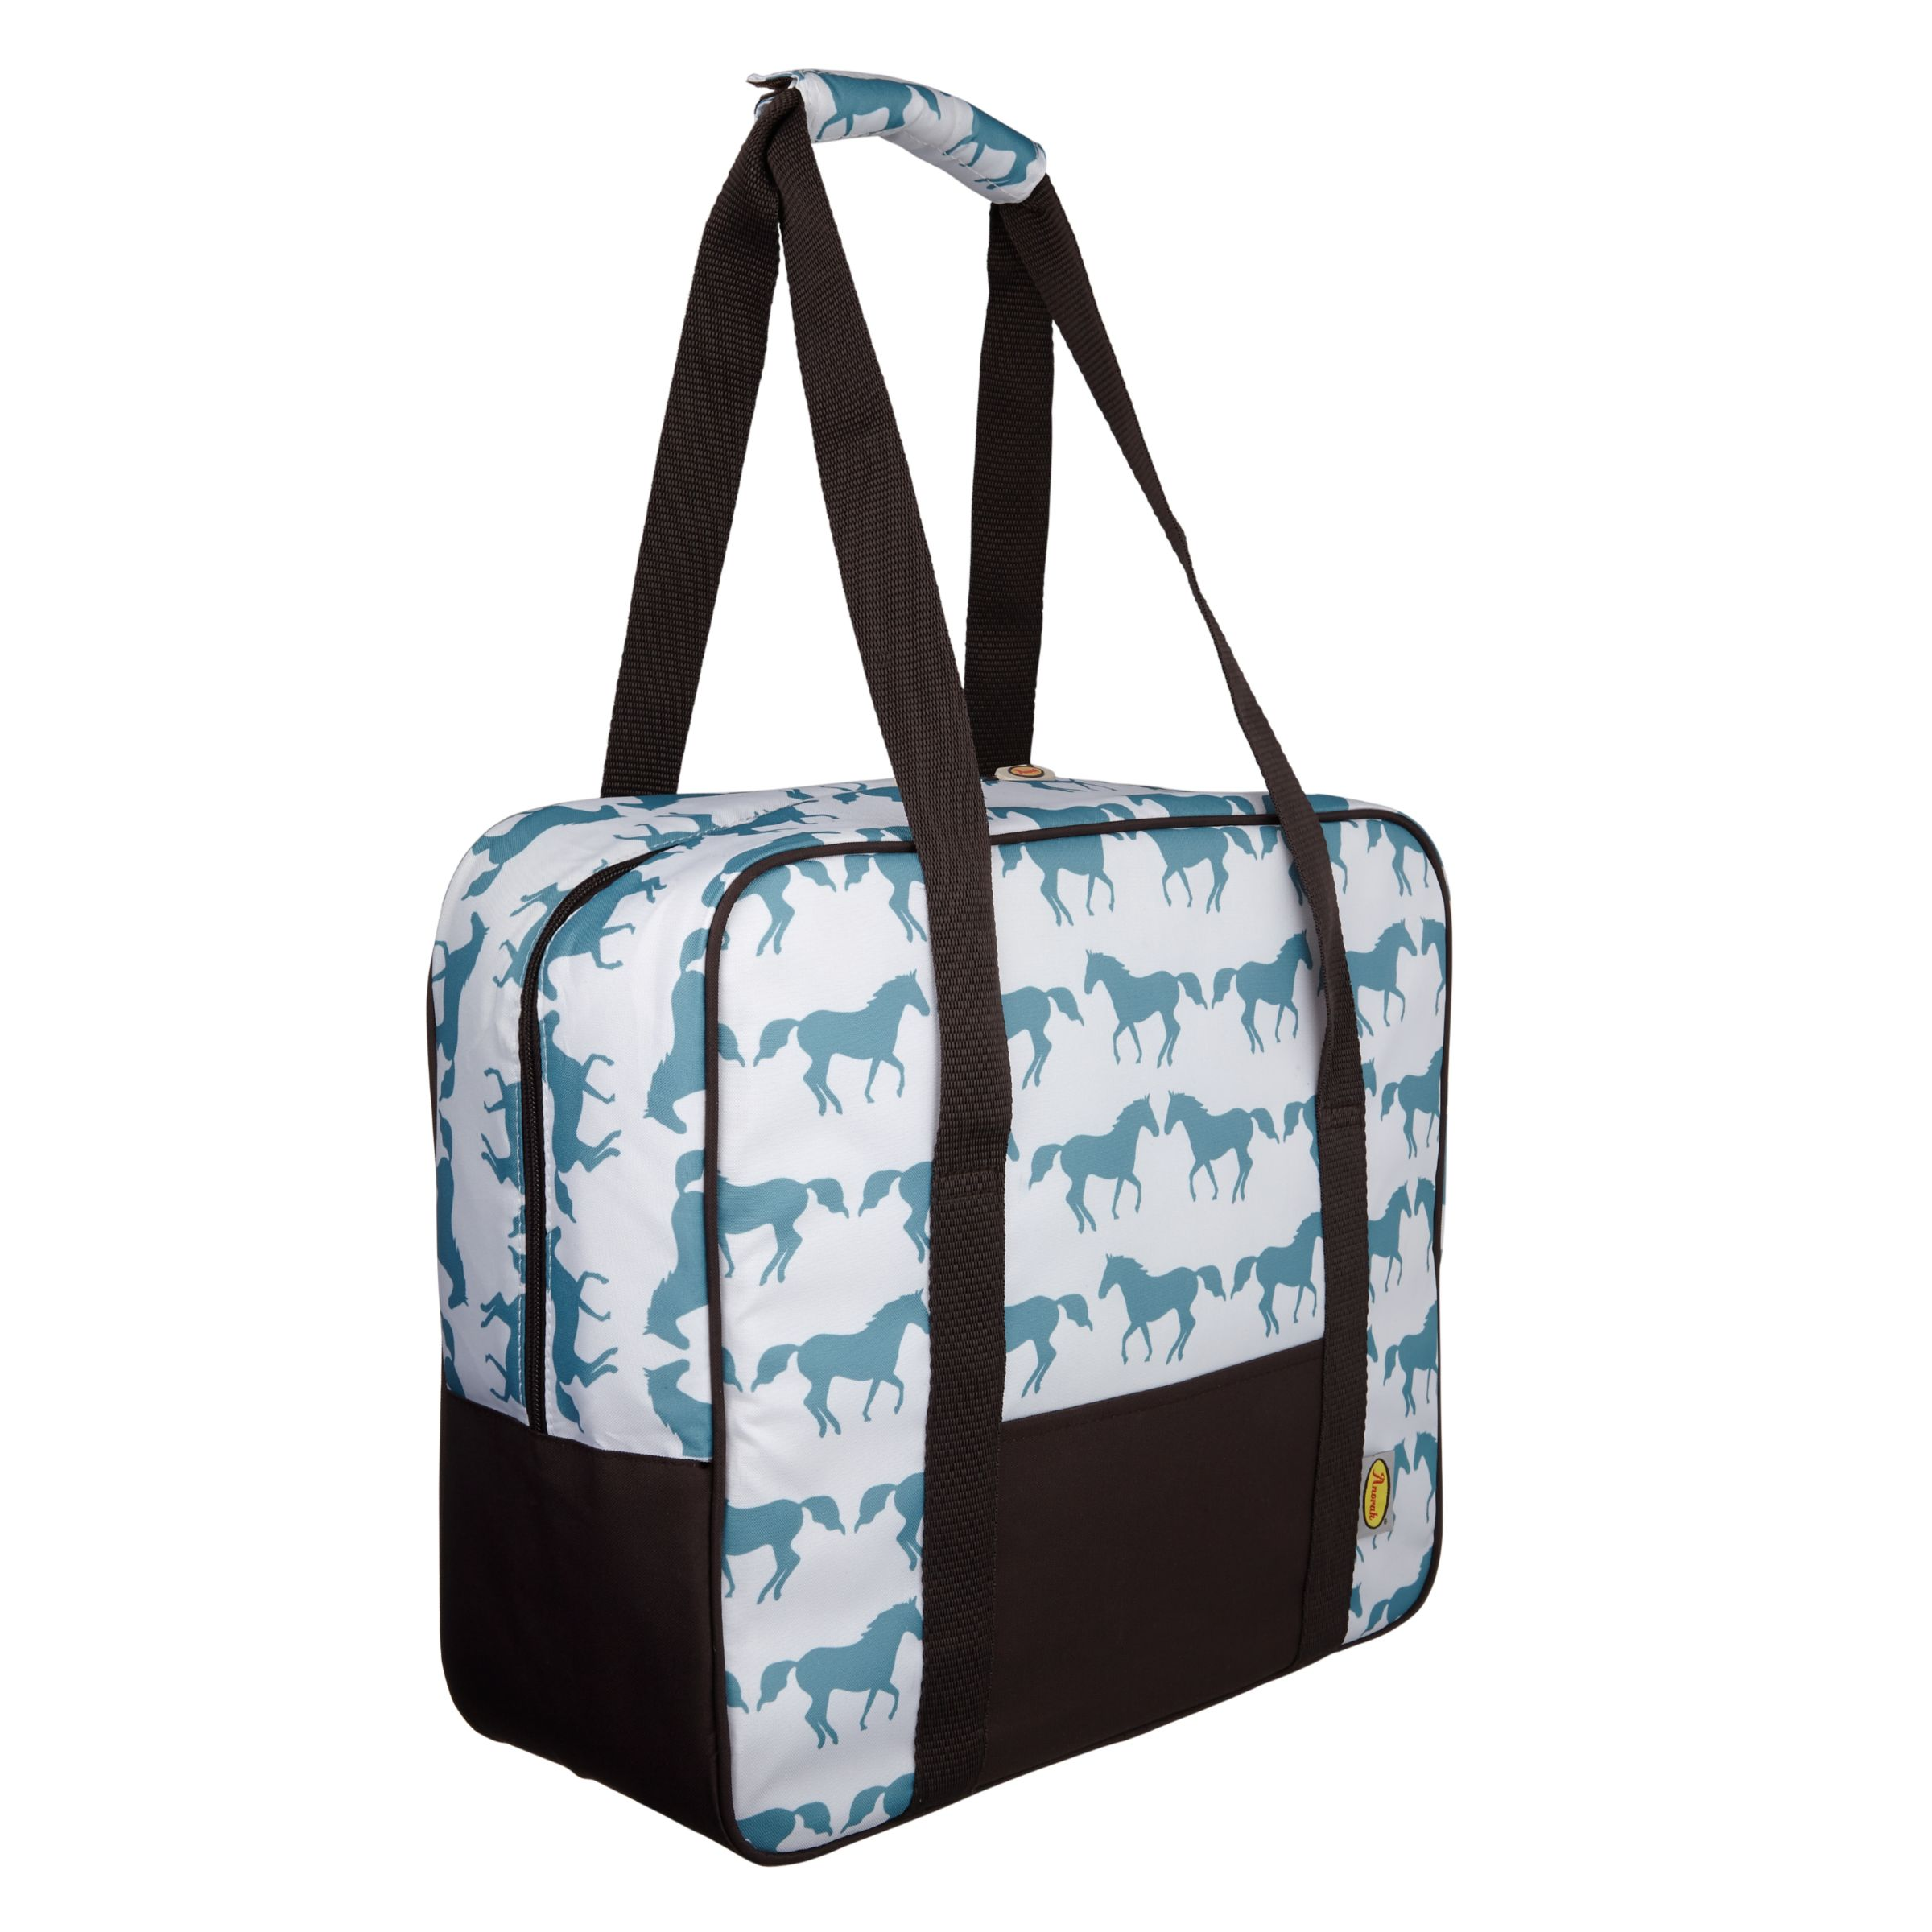 Anorak Kissing Horses Coolbag